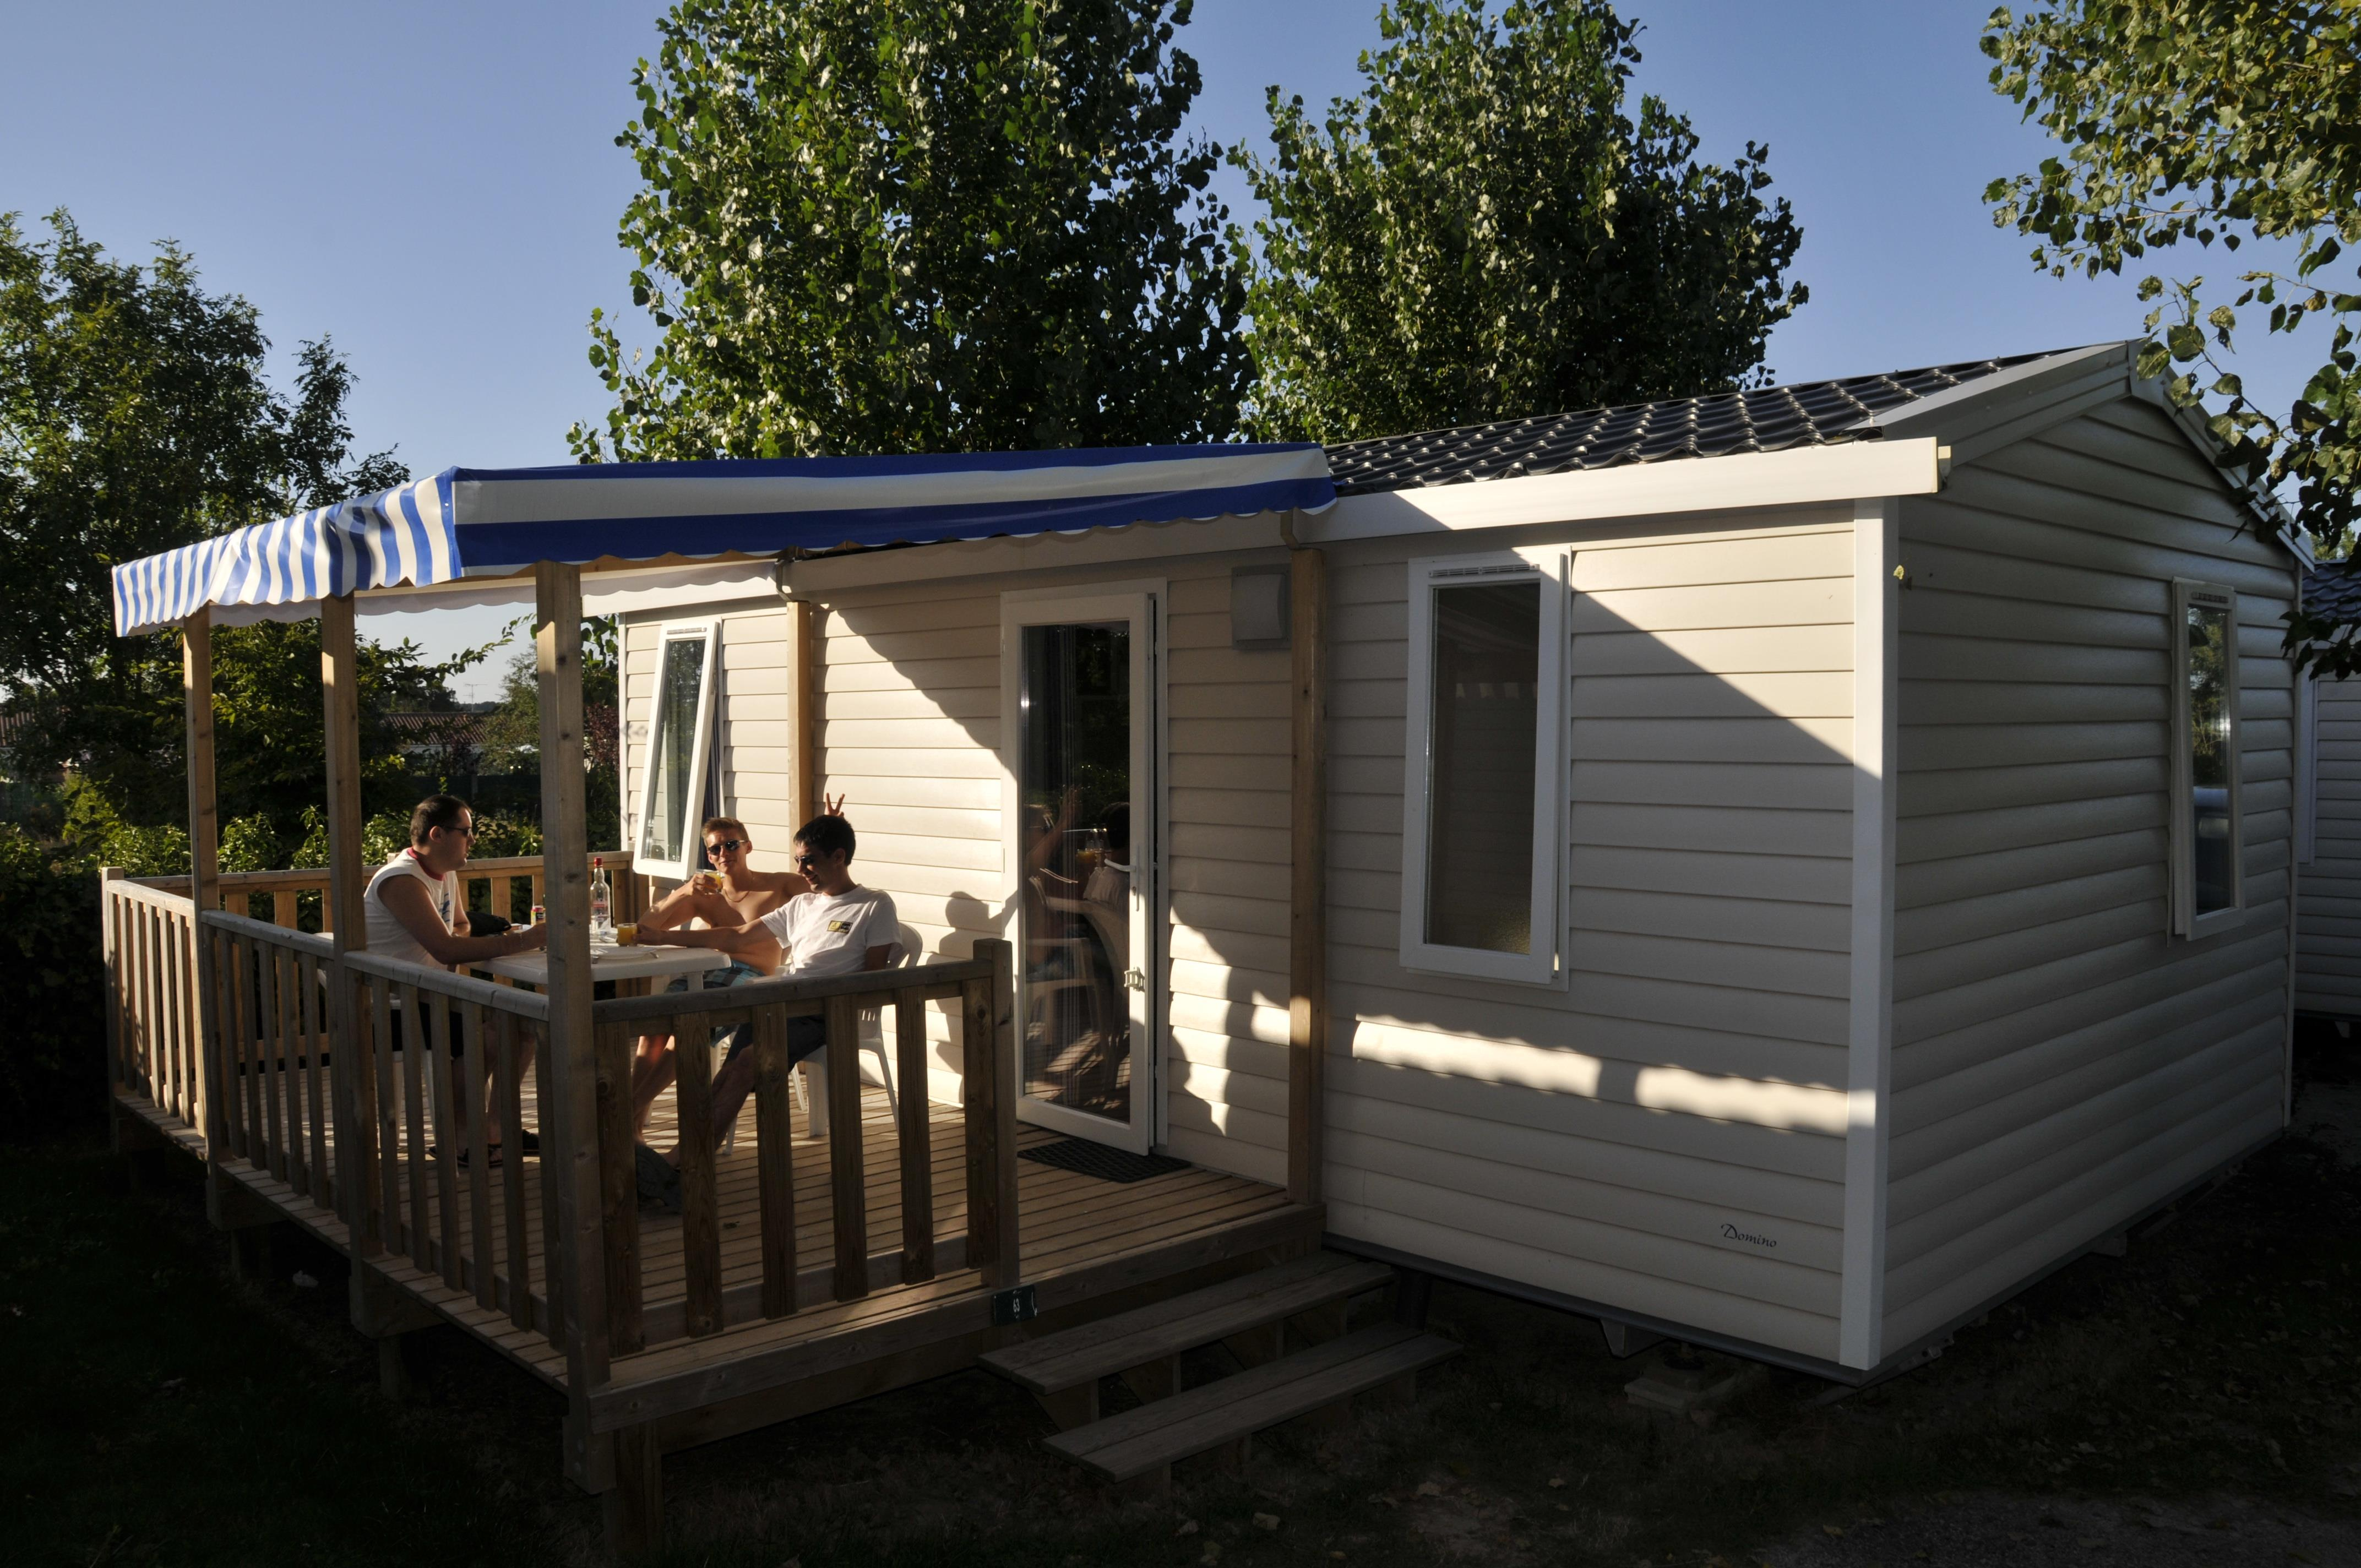 Mobilhome Domino avec terrasse (2 chambres) - 26 m²  ( - 5ans)